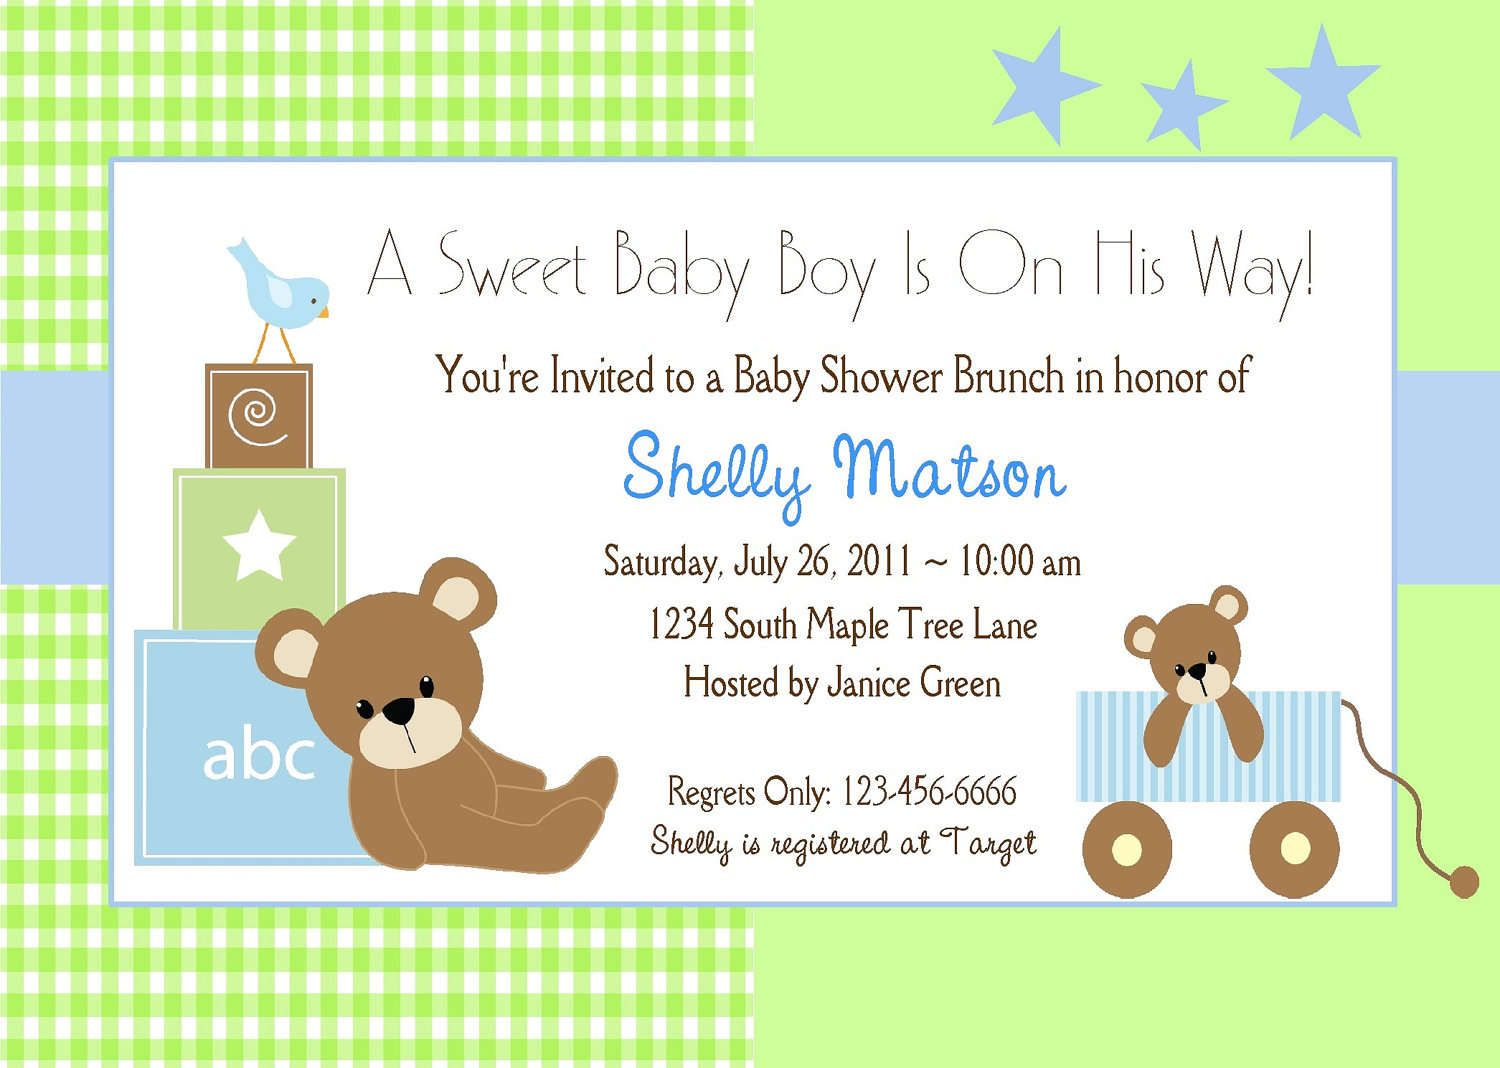 Baby Shower Invitations Free Templates Online Cool Download Now Free Template It's A Baby Boy Shower Invitations  Baby .